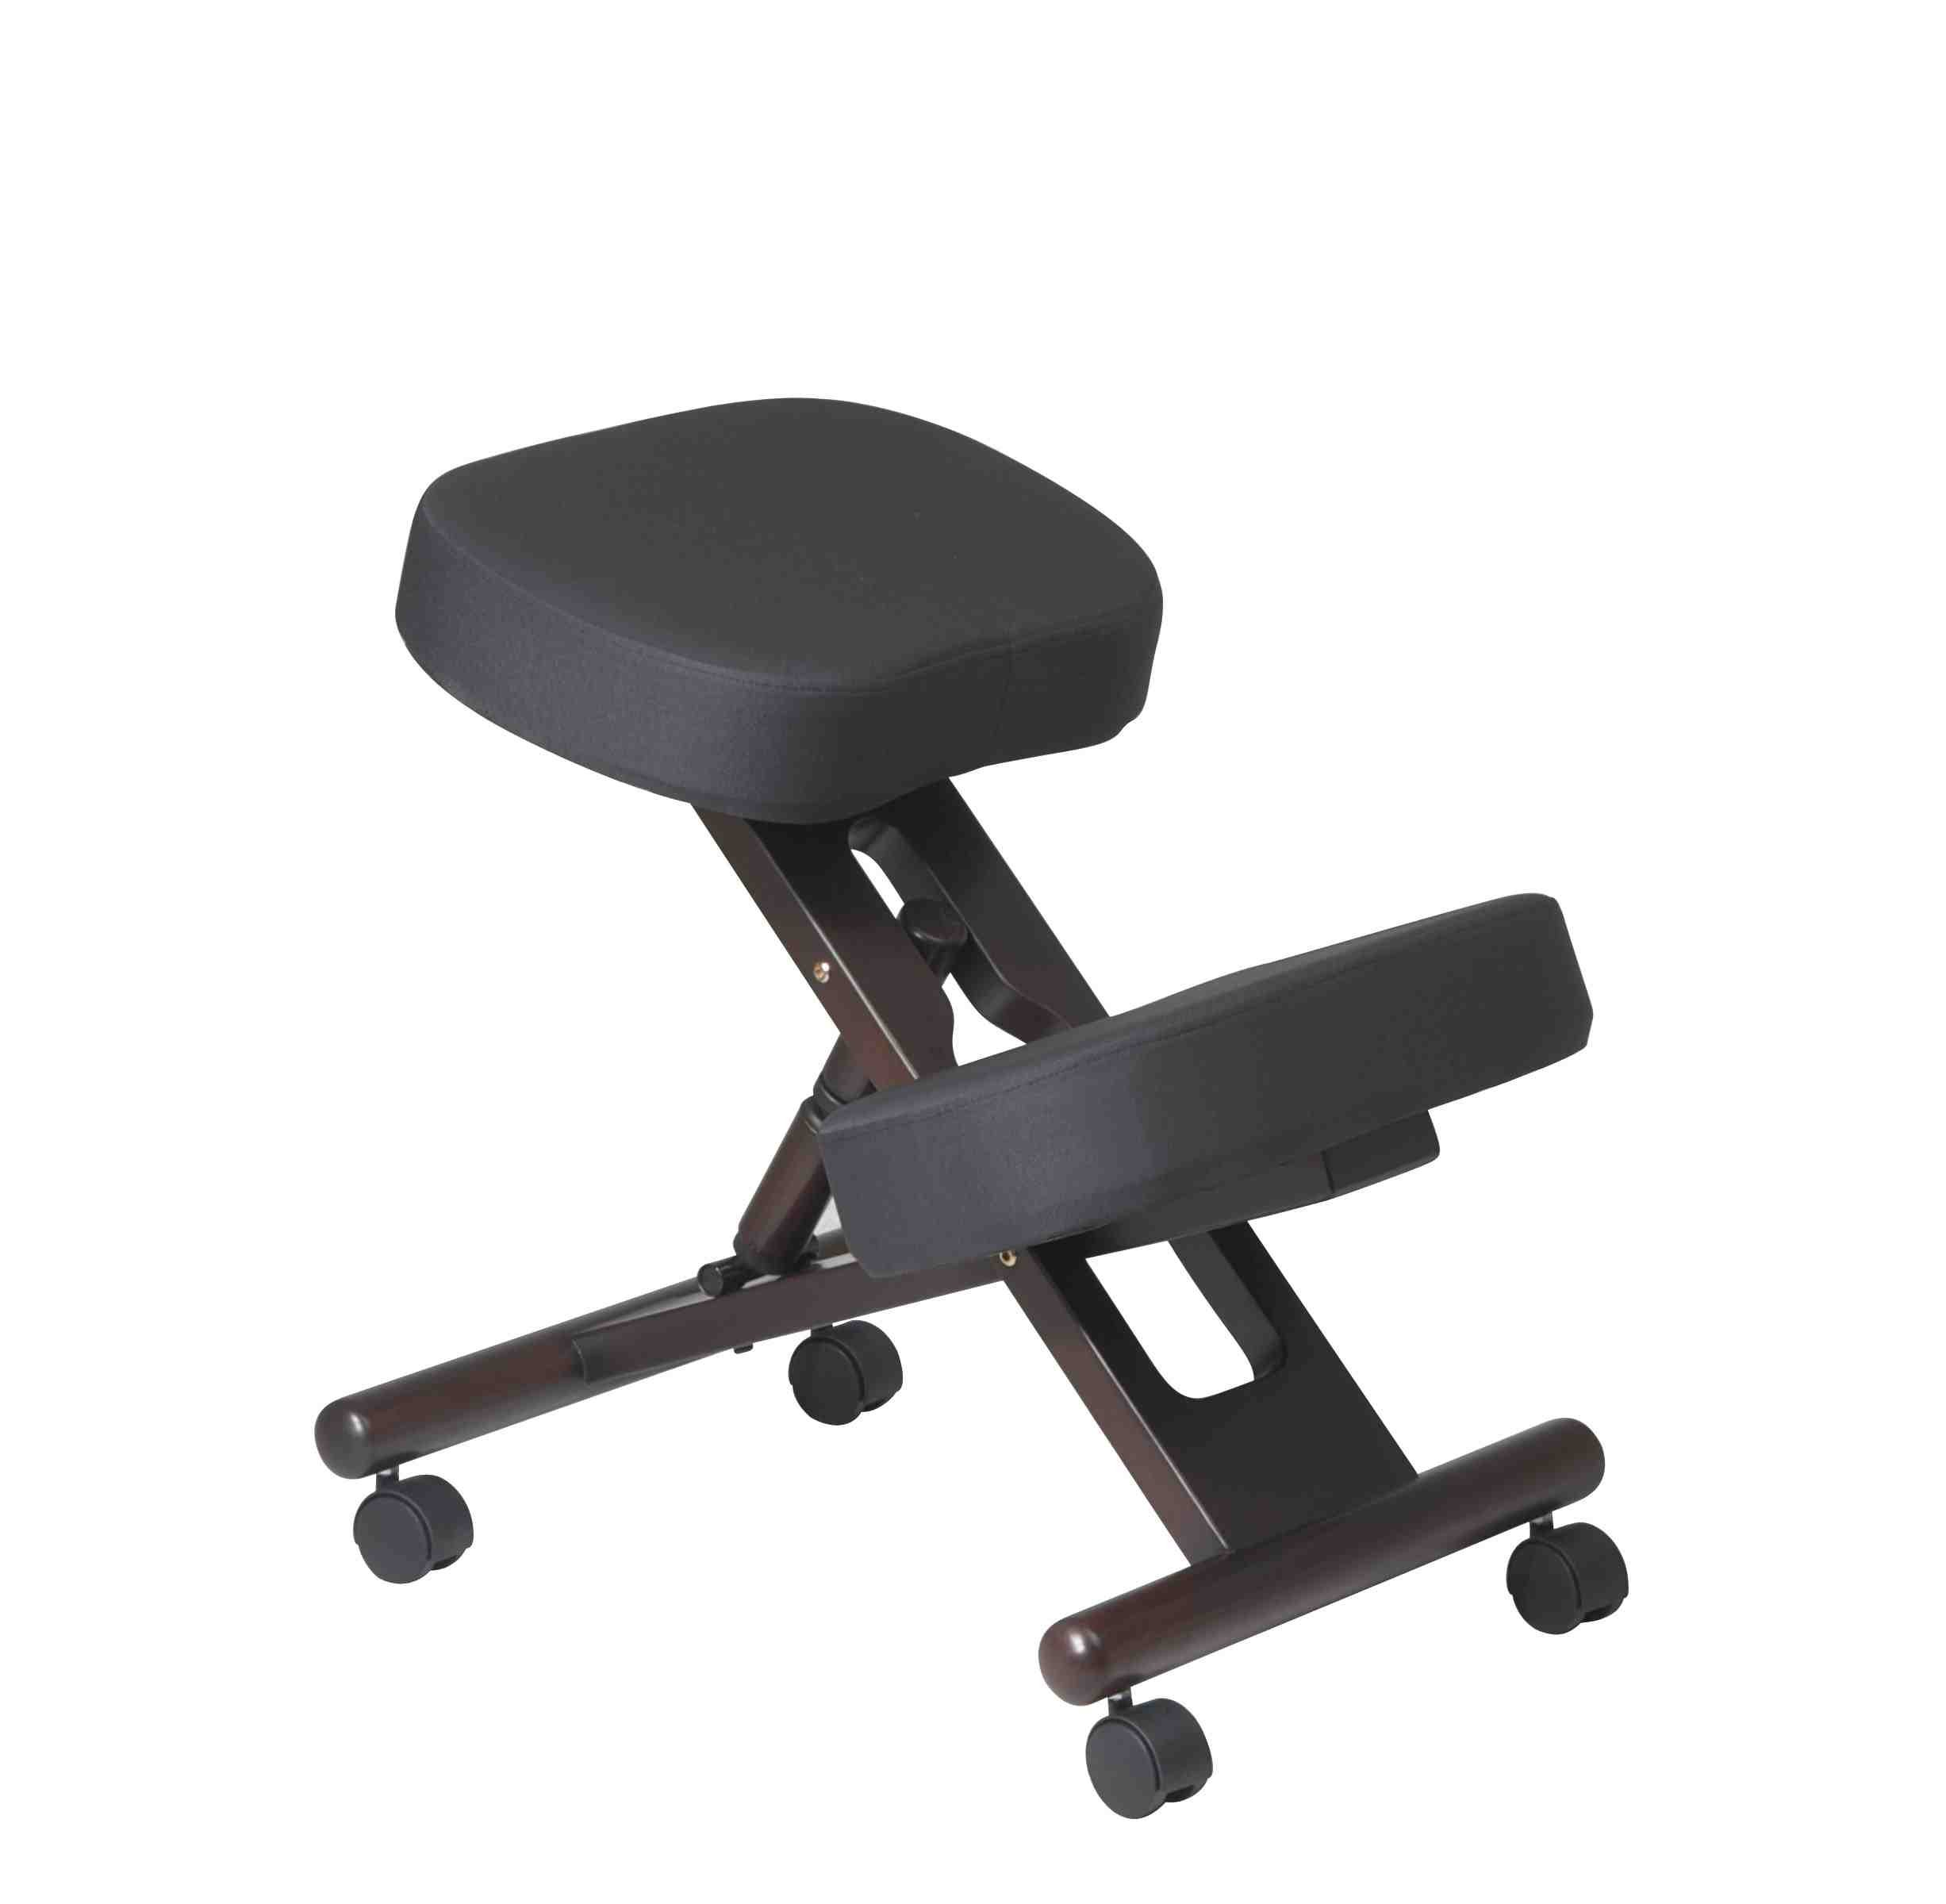 Office Star Ergonomically Designed Knee Chair with Casters, Memory Foam and Espresso Finished Wood Base, Black by Office Star